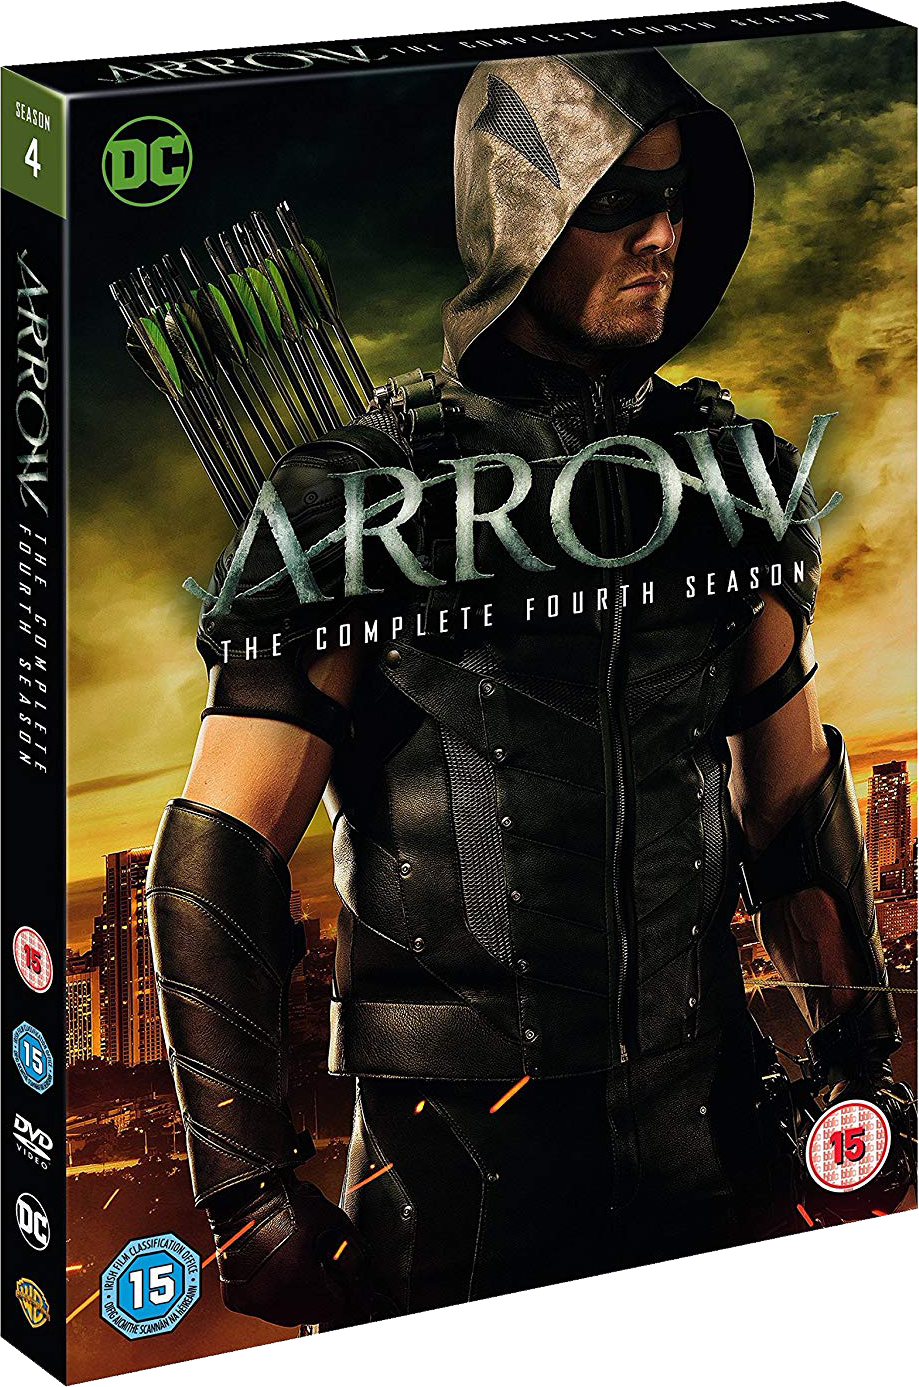 Arrow - The Complete Fourth Season region 2 cover.png